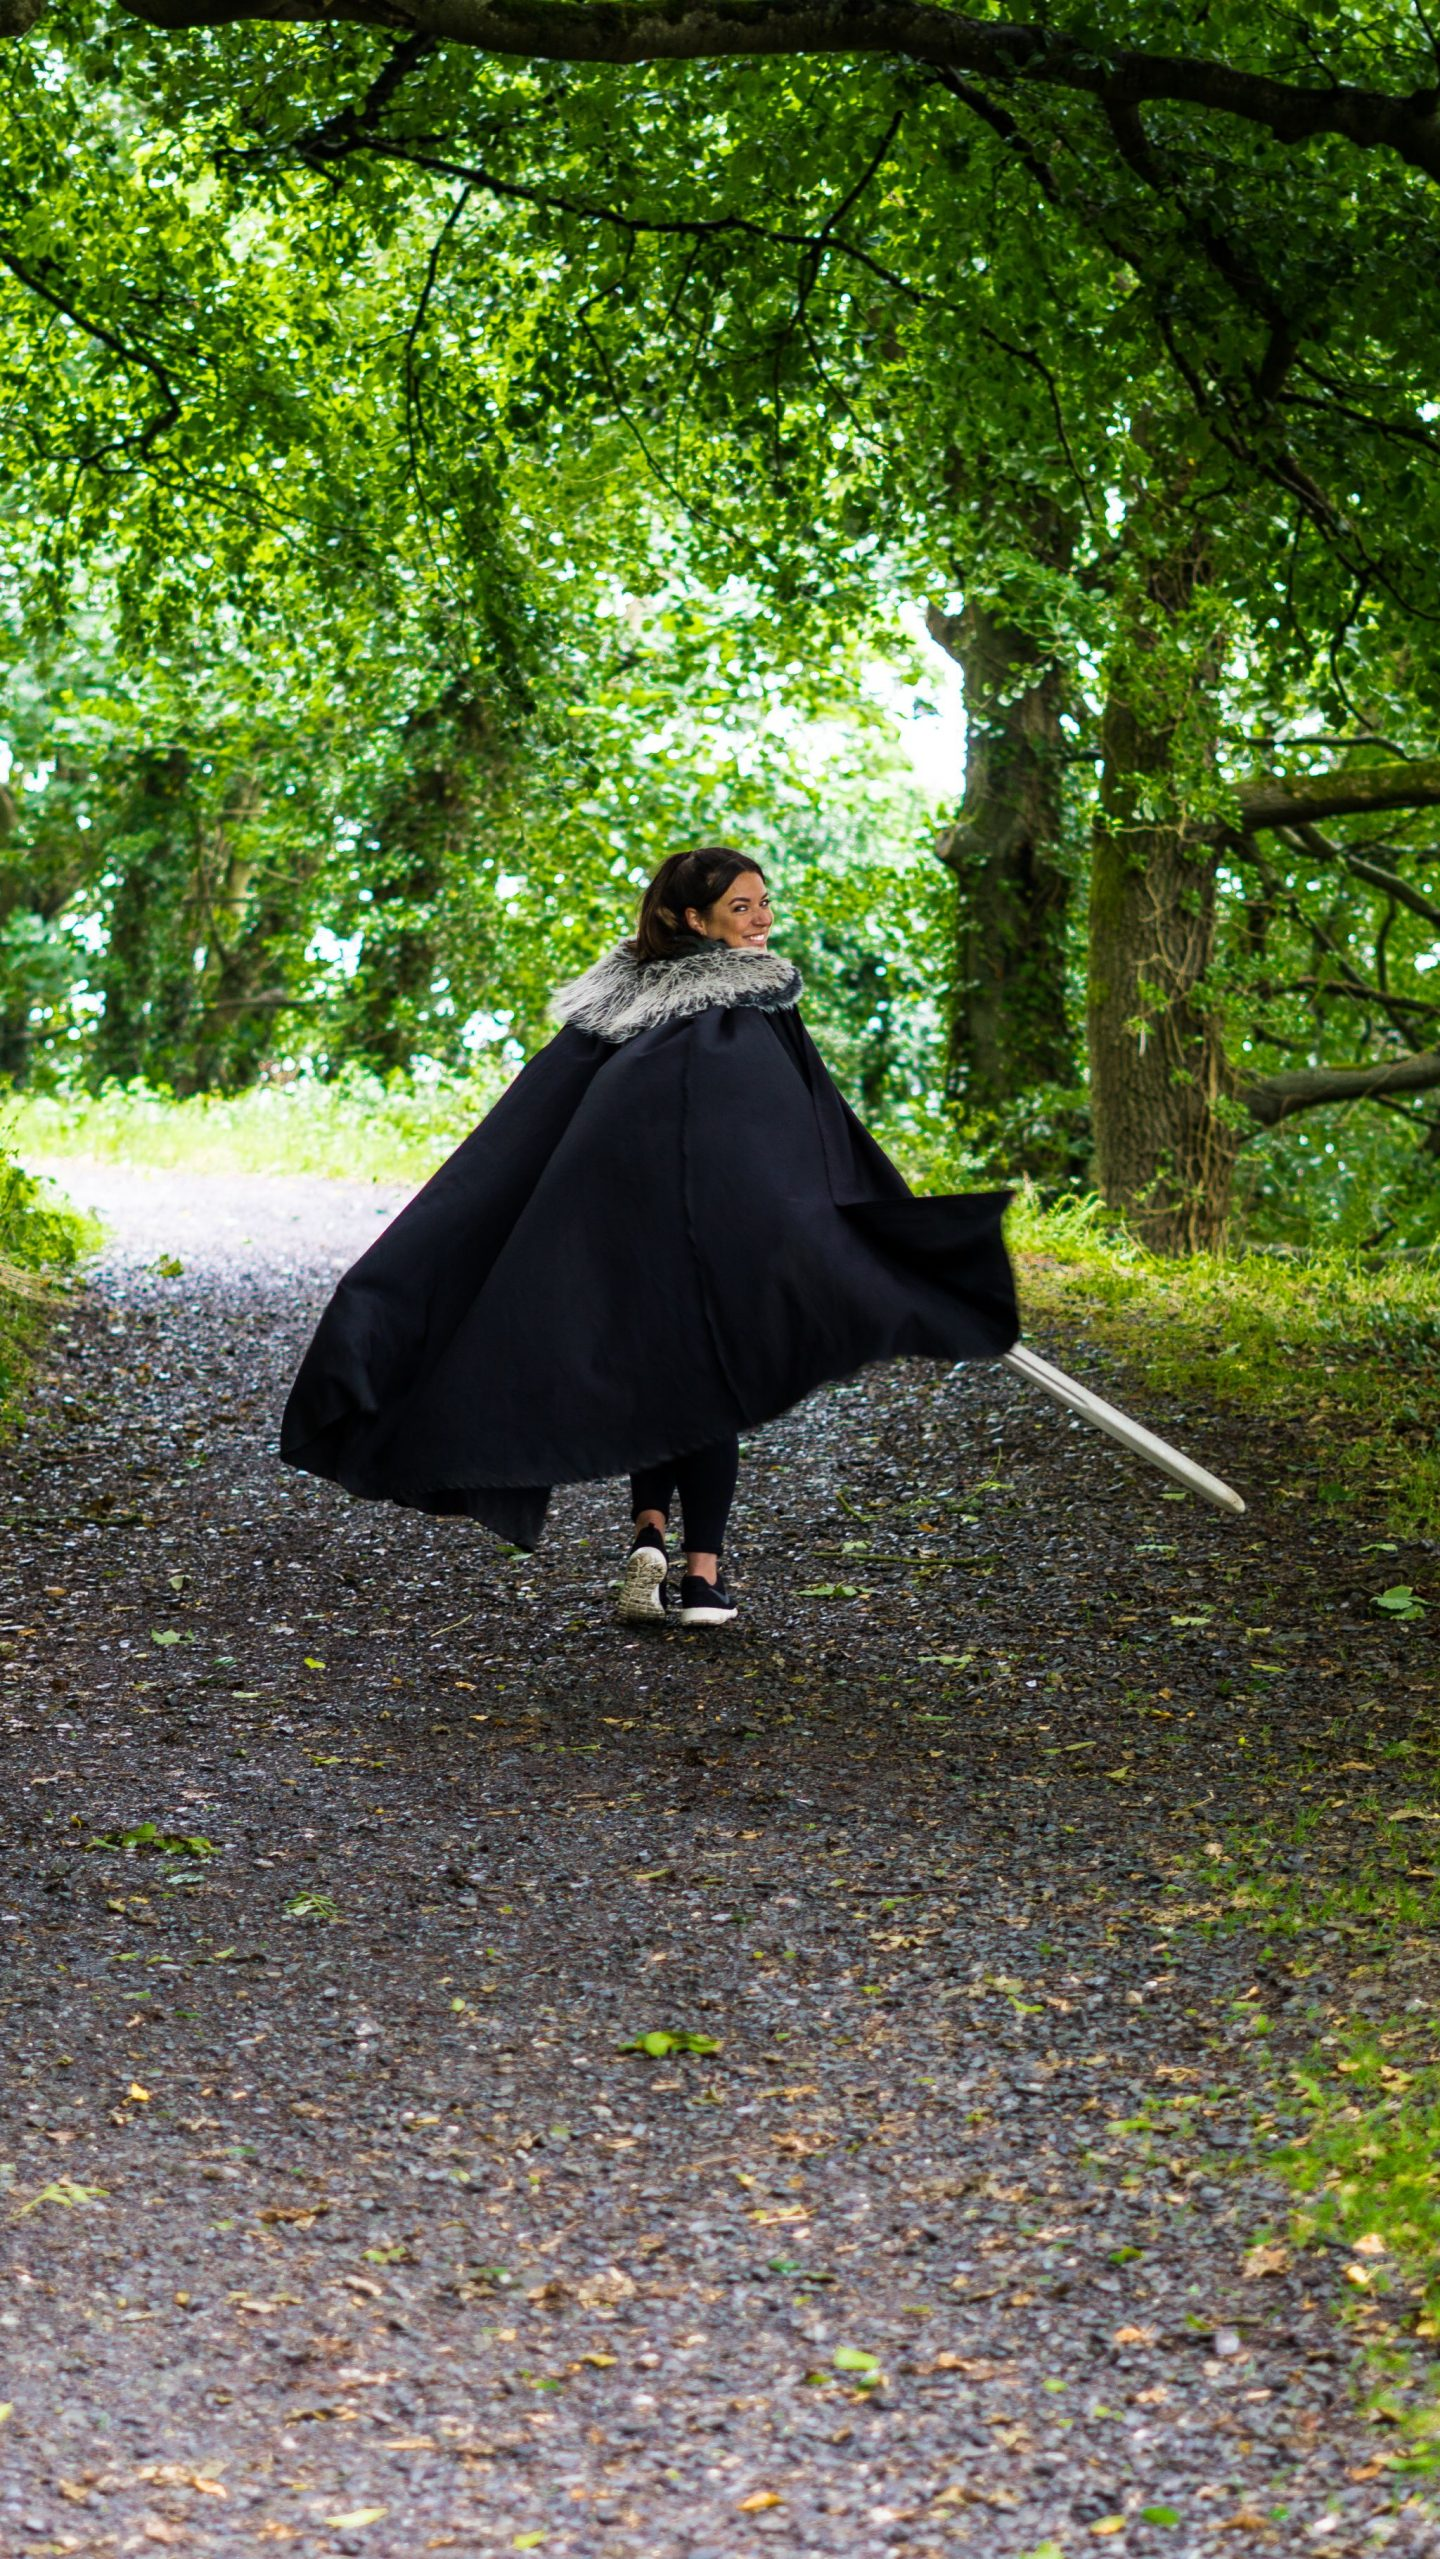 Game of Thrones Nadia El Ferdaoussi Winterfell Tours Northern Ireland Locations Castle Ward #GOTterritory